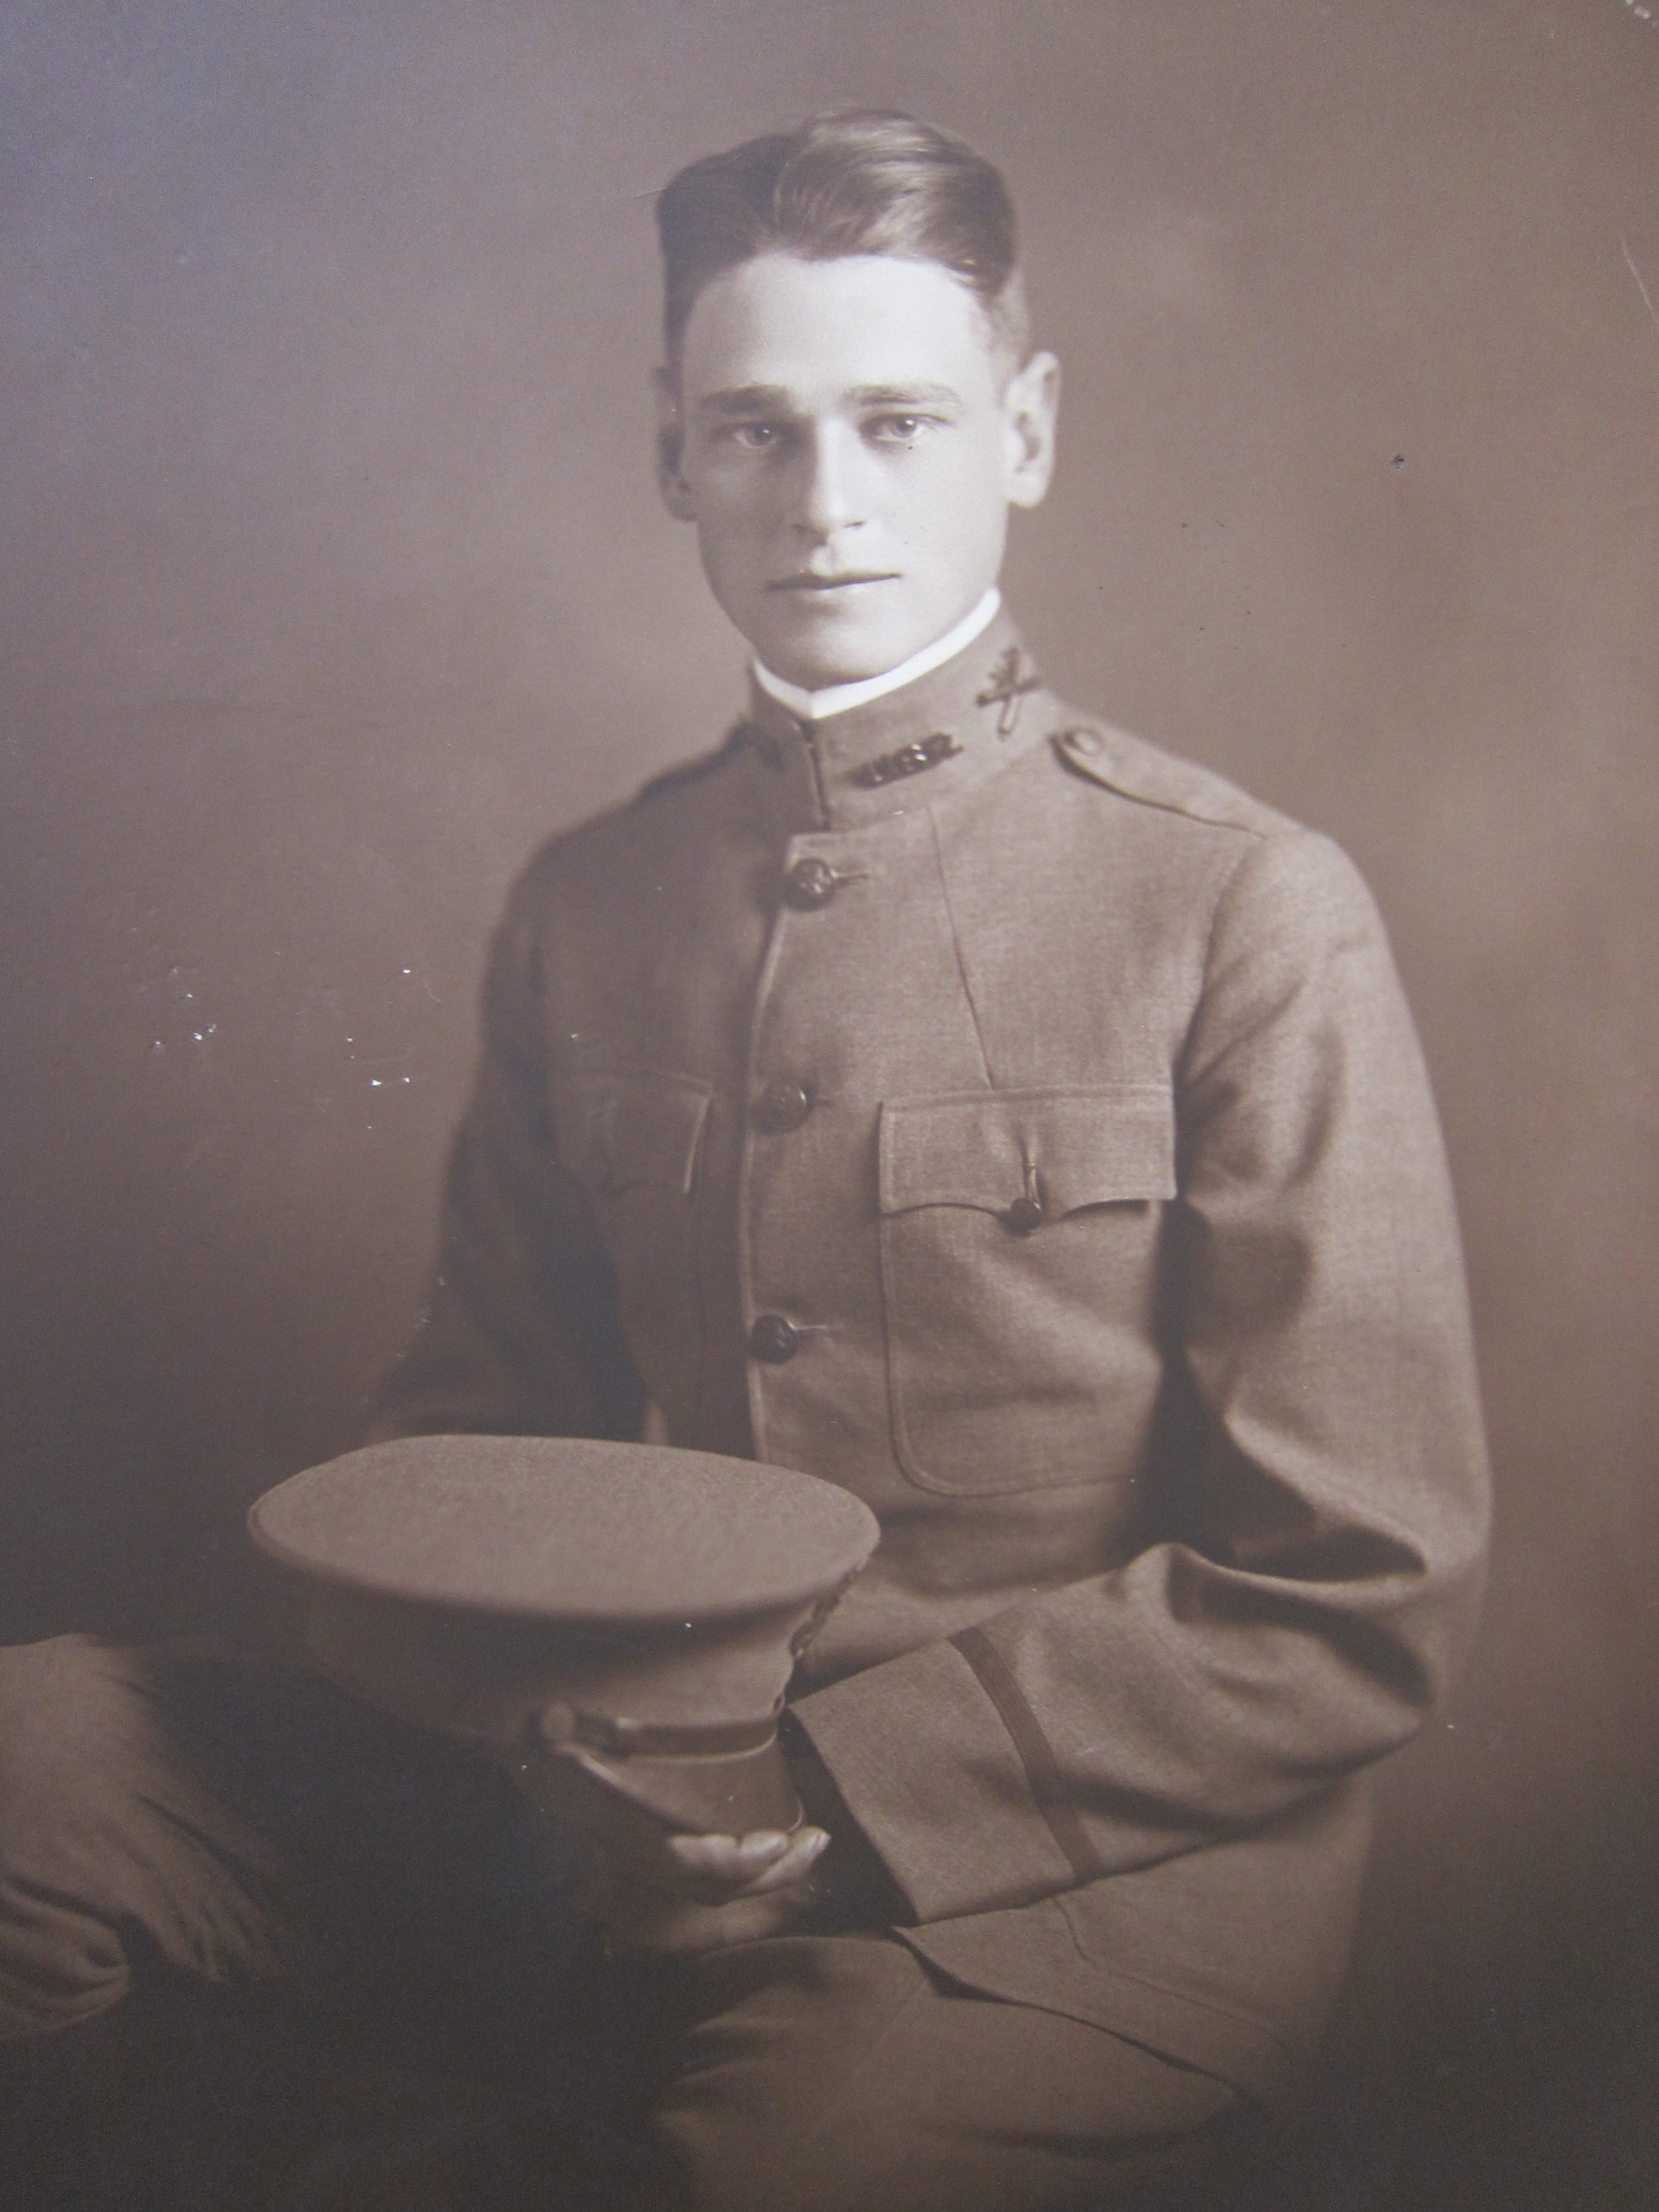 Donald Fullerton, Princeton Class of 1913 and the founder of the princeton evangelical fellowship, in his first world war uniform